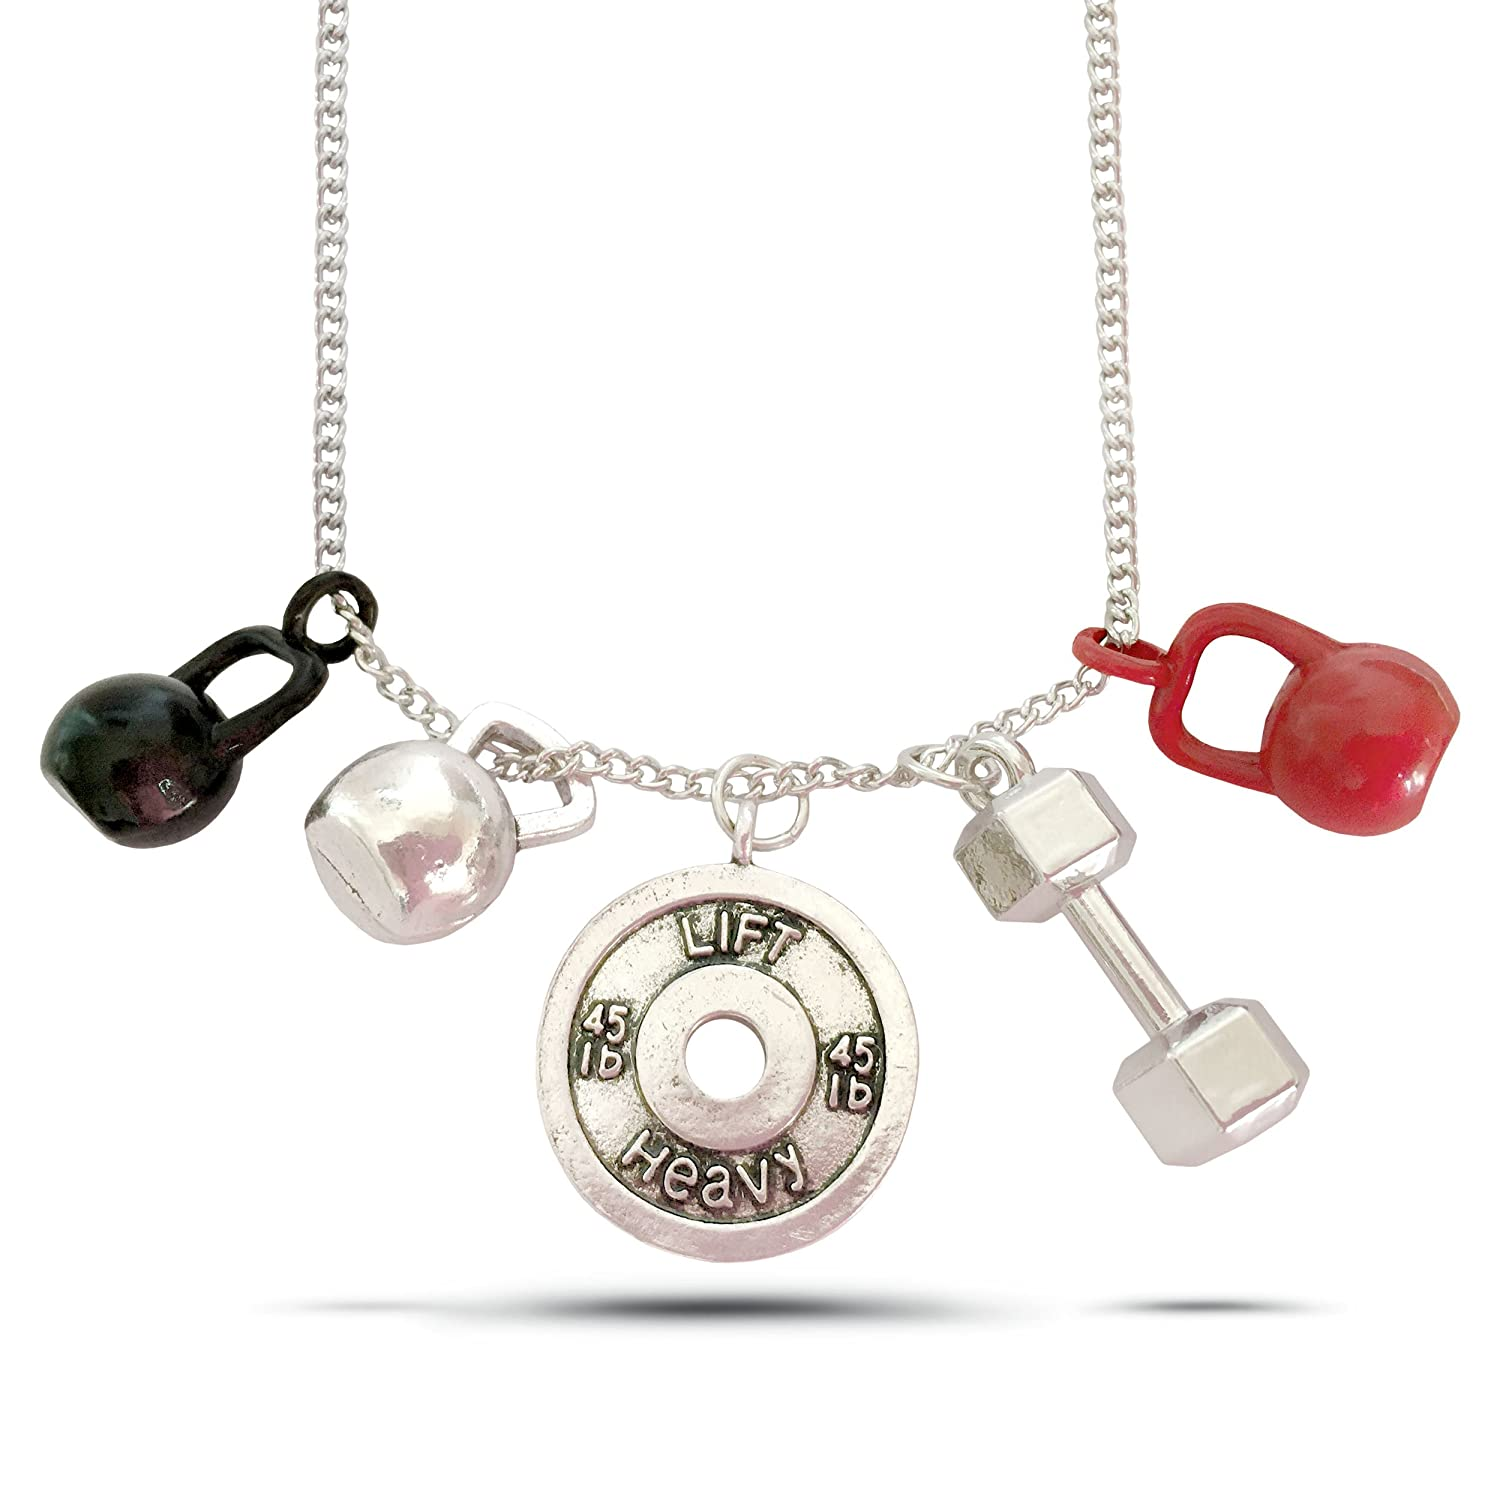 ... (5 in 1) - Great Fitnesss Jewelry in Gift Box - Barbell Plate -  Kettlebell - Lift Heavy Charm - Great Gift for Weight Lifting and WOD  Fanatics: Jewelry